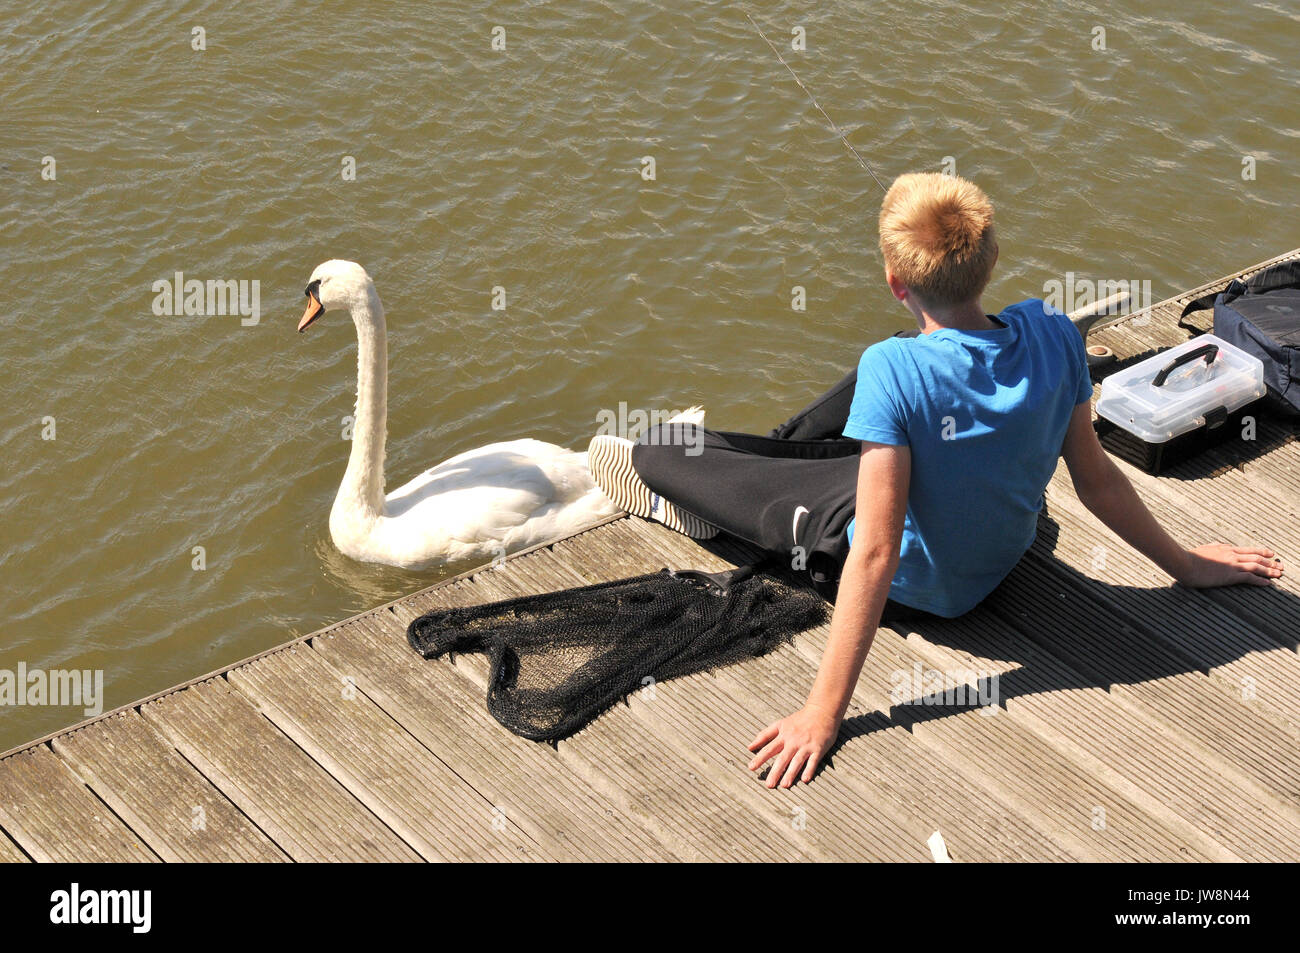 a young lad or boy sitting next to a river fishing next to some boats and swans contented and happy enjoying the sunshine and having fun - Stock Image